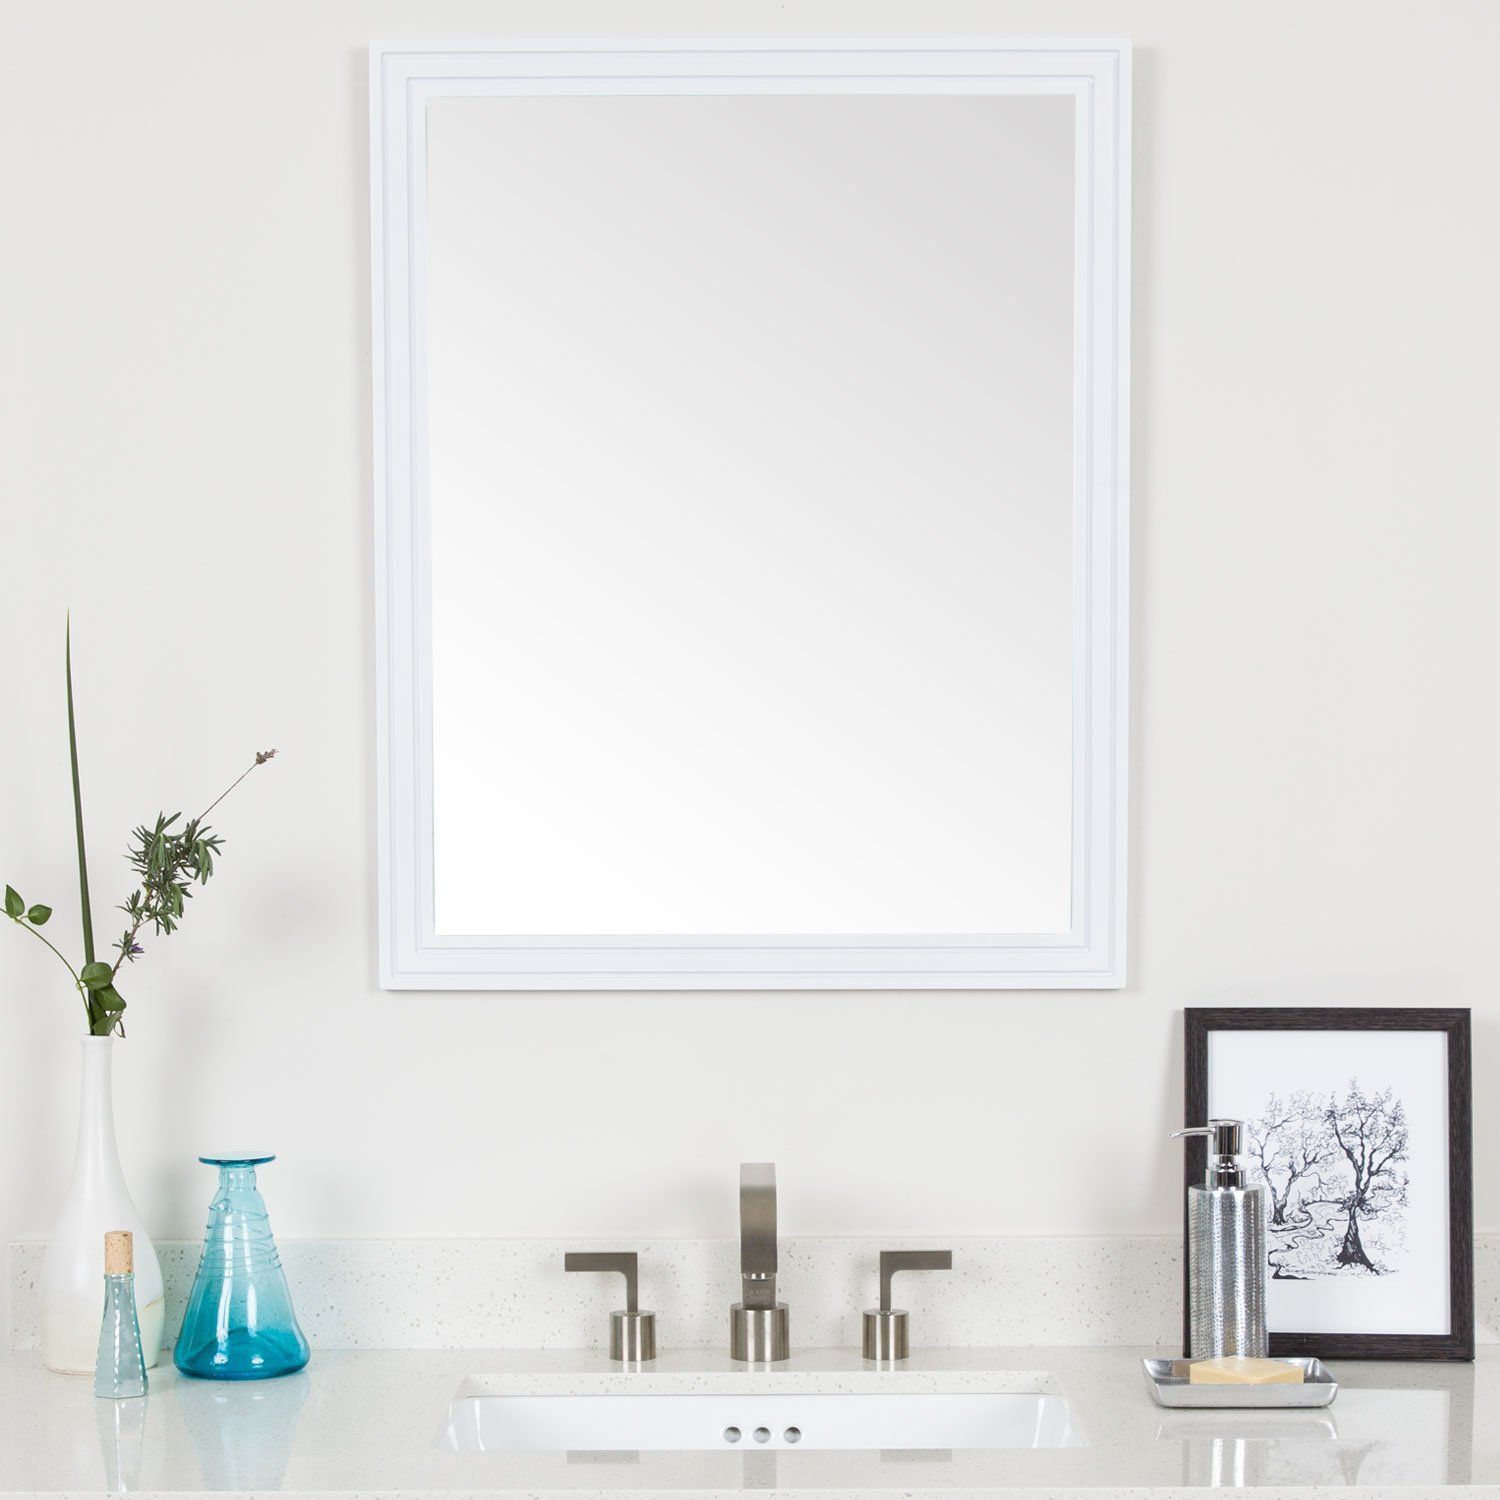 MAYKKE Cosette 30\' H x 24\' W Rectangle White Wall Decor Bathroom ...